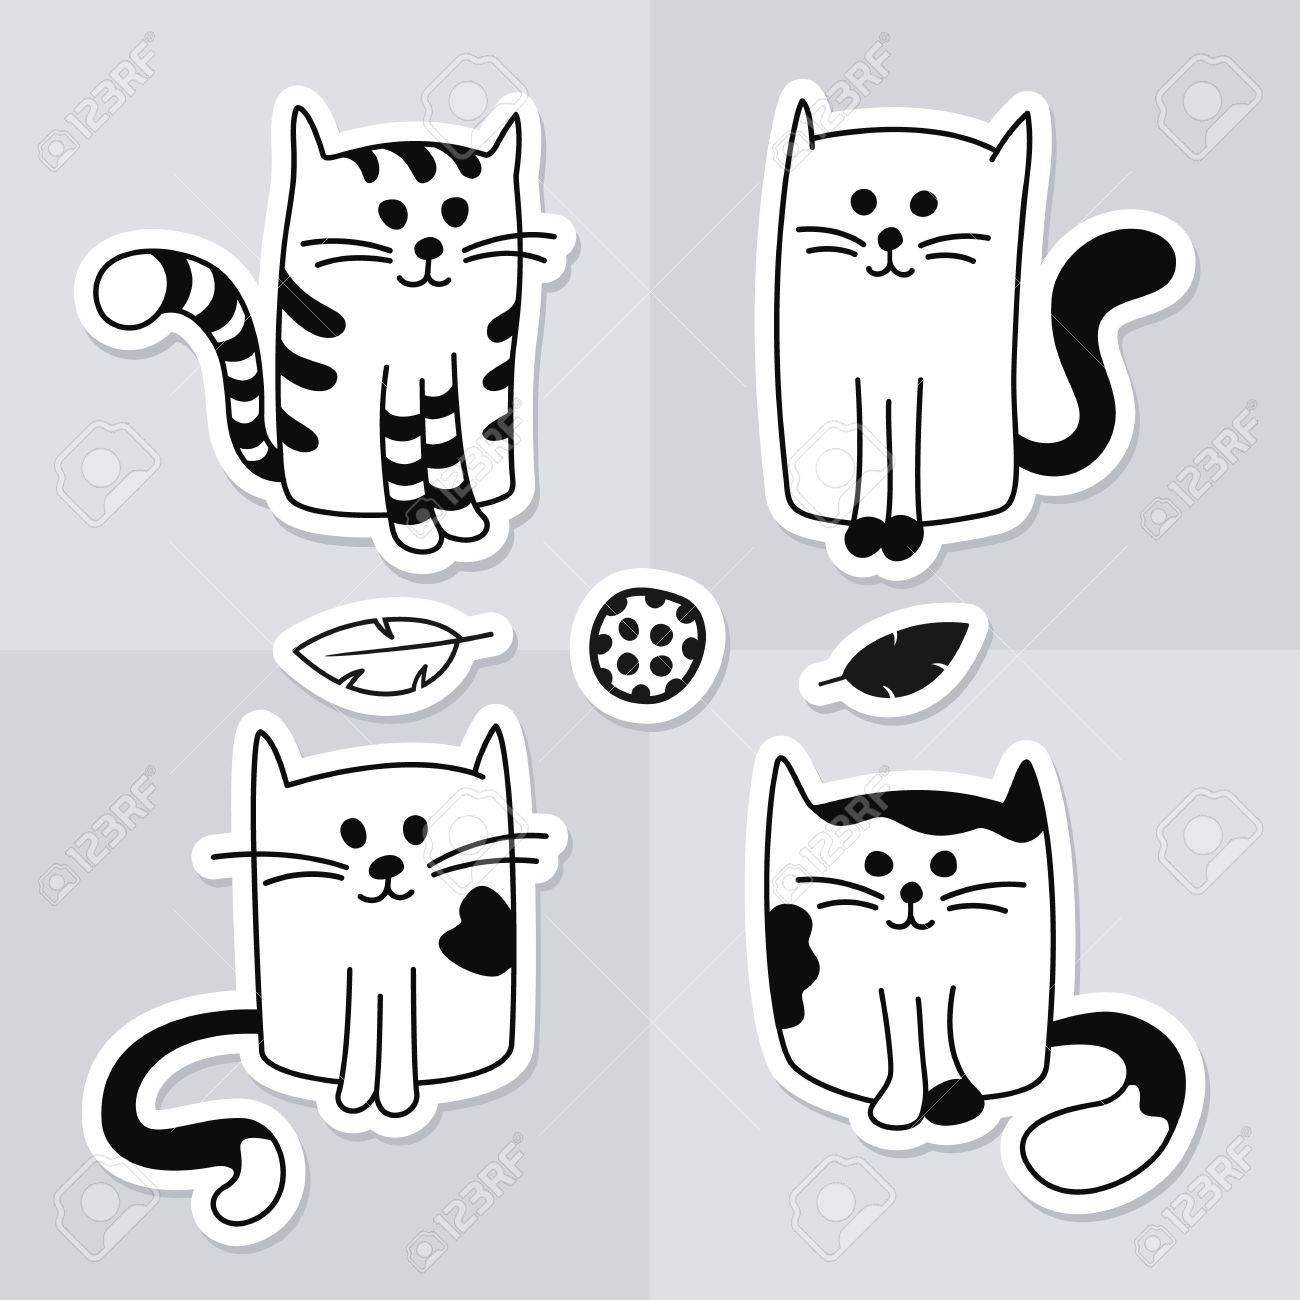 Cute Cartoon Black And White Cats Or Kittens With Cat Toys Set Royalty Free Cliparts Vectors And Stock Illustration Image 70187766